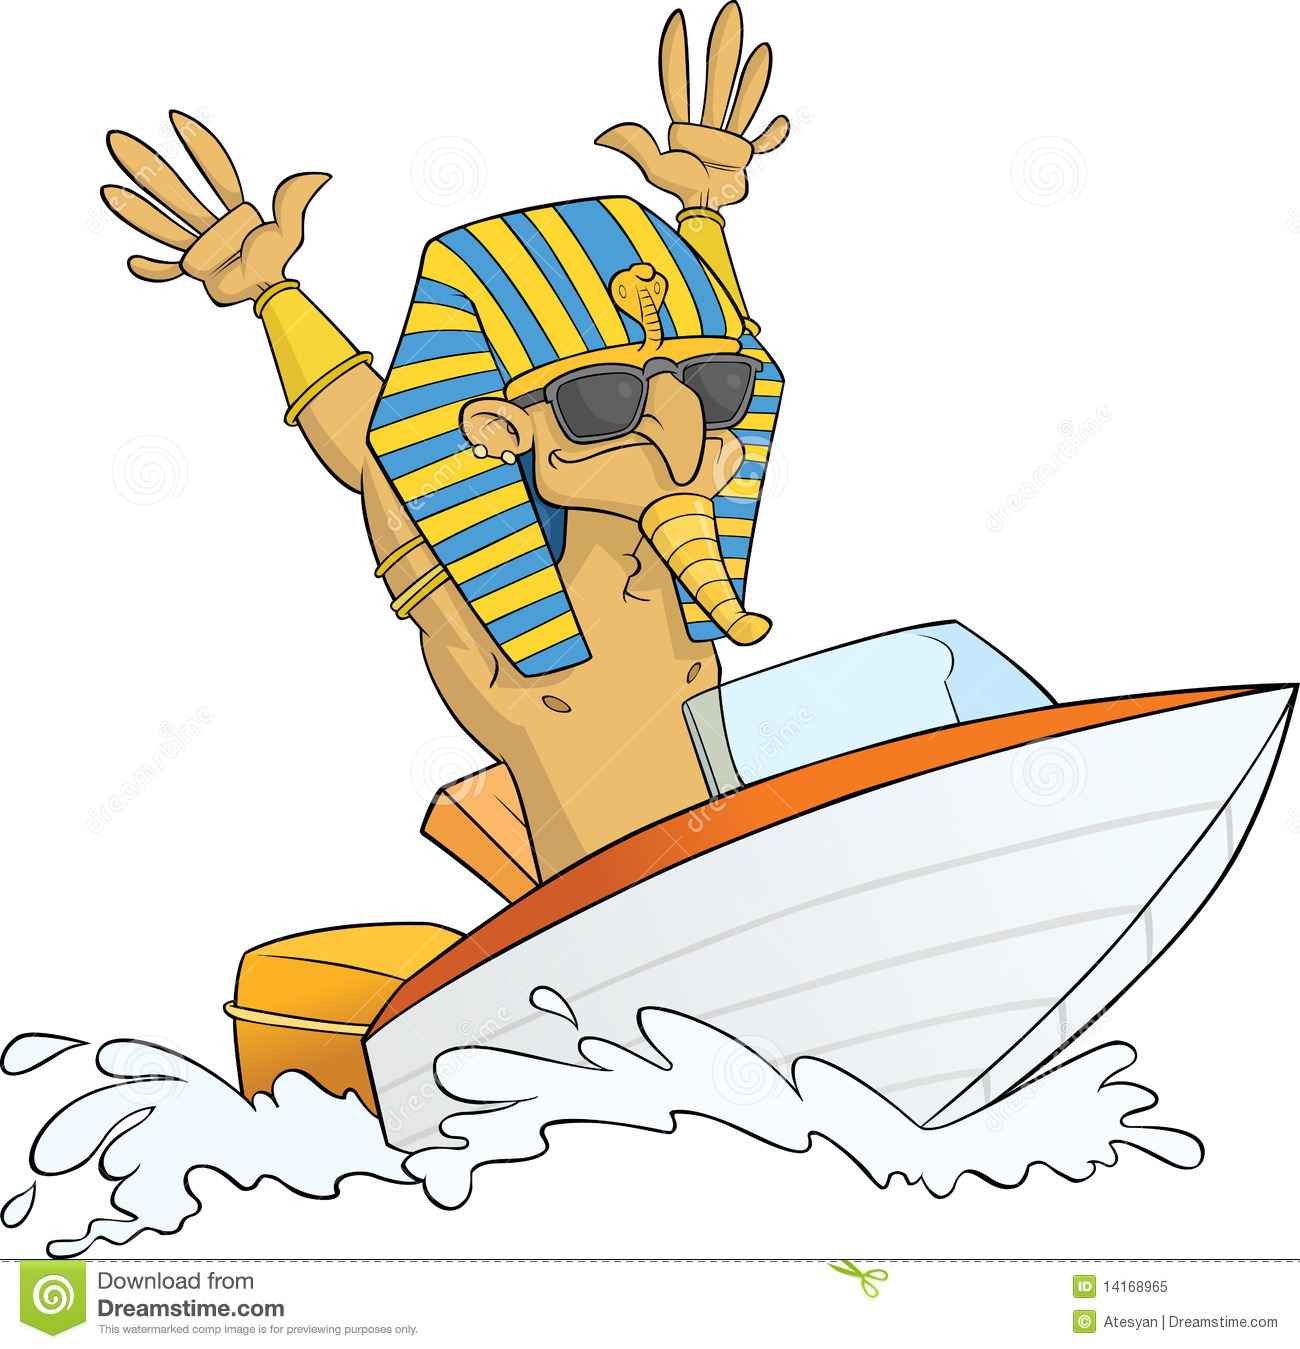 Pharaoh having fun on his speed boat. Ai8 EPS vector file available.